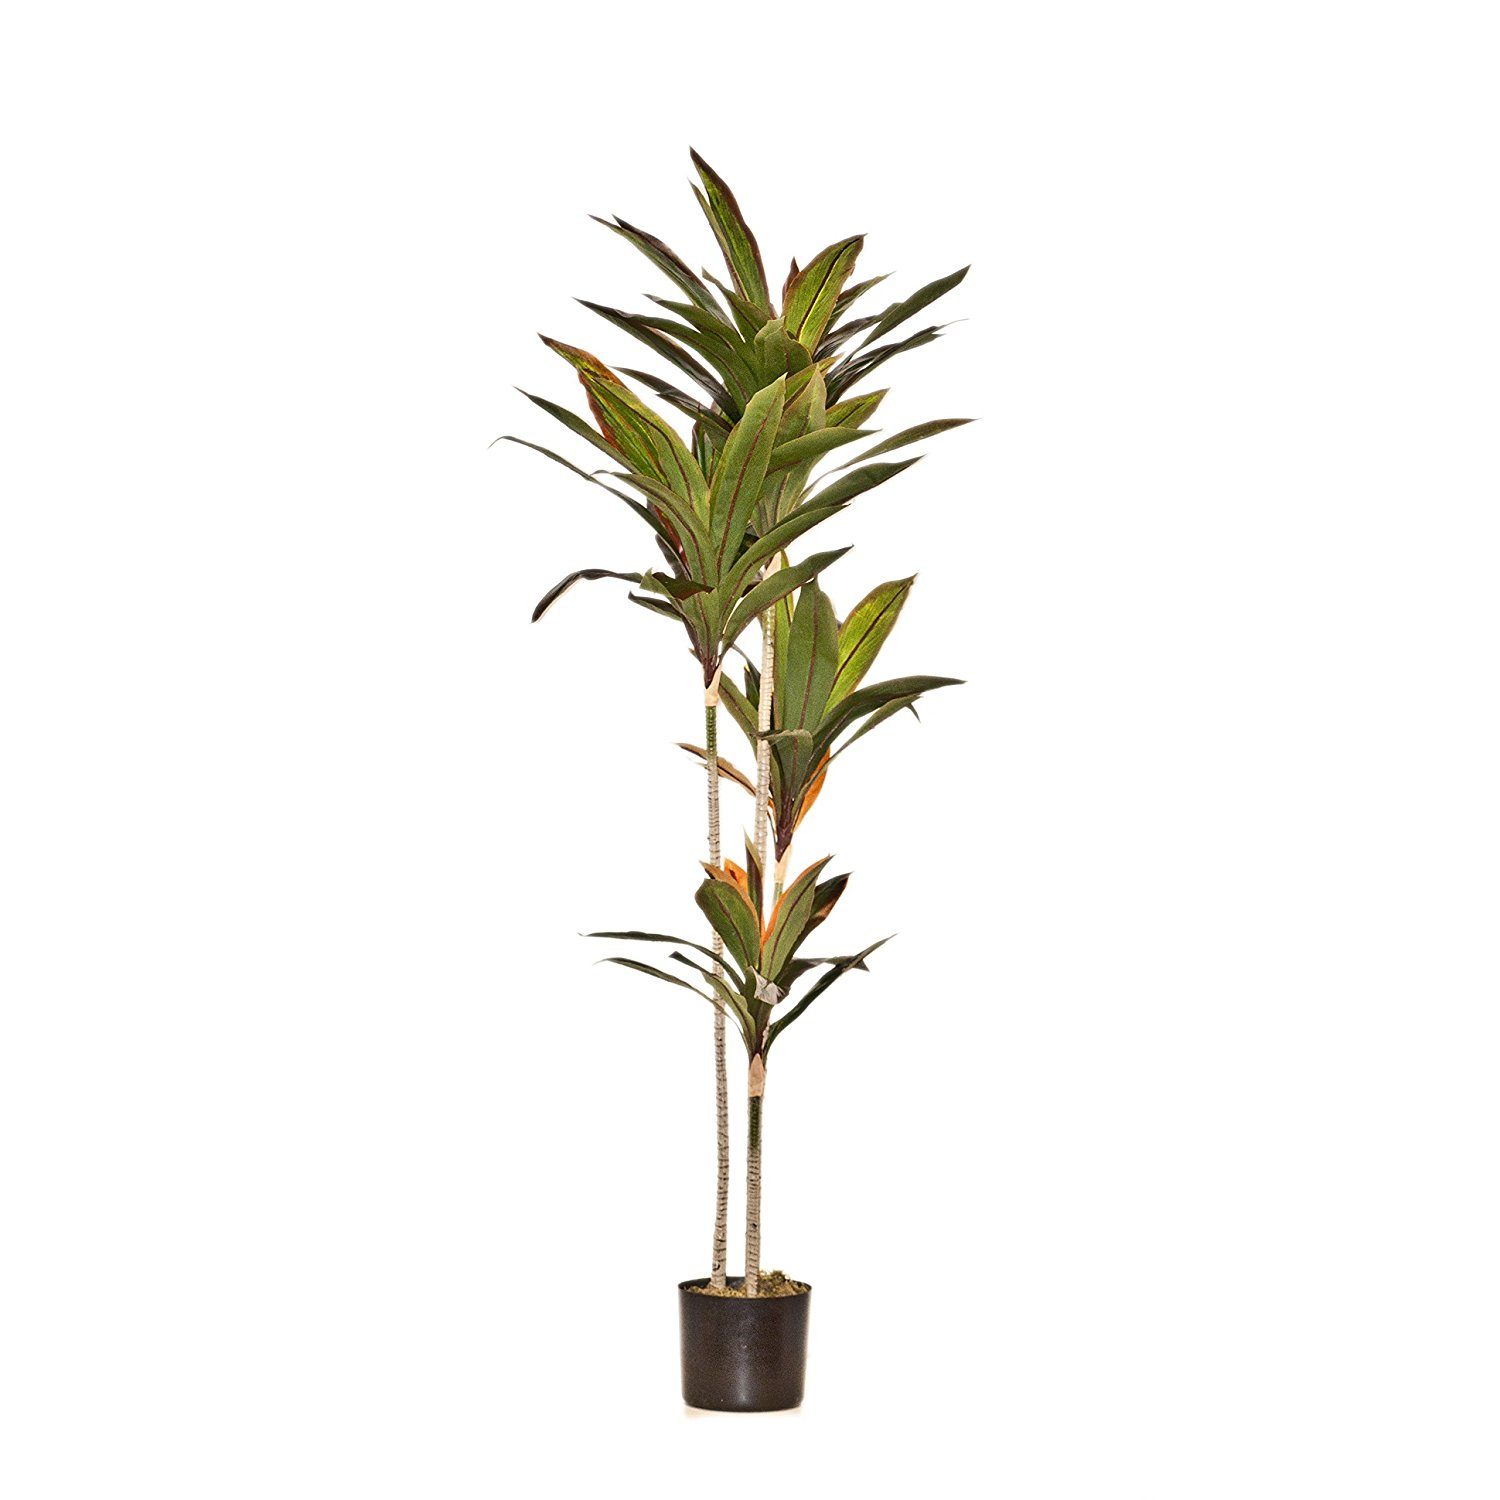 63 Inches Brazil Leaf Bonsai Artificial Plant for Home Decor